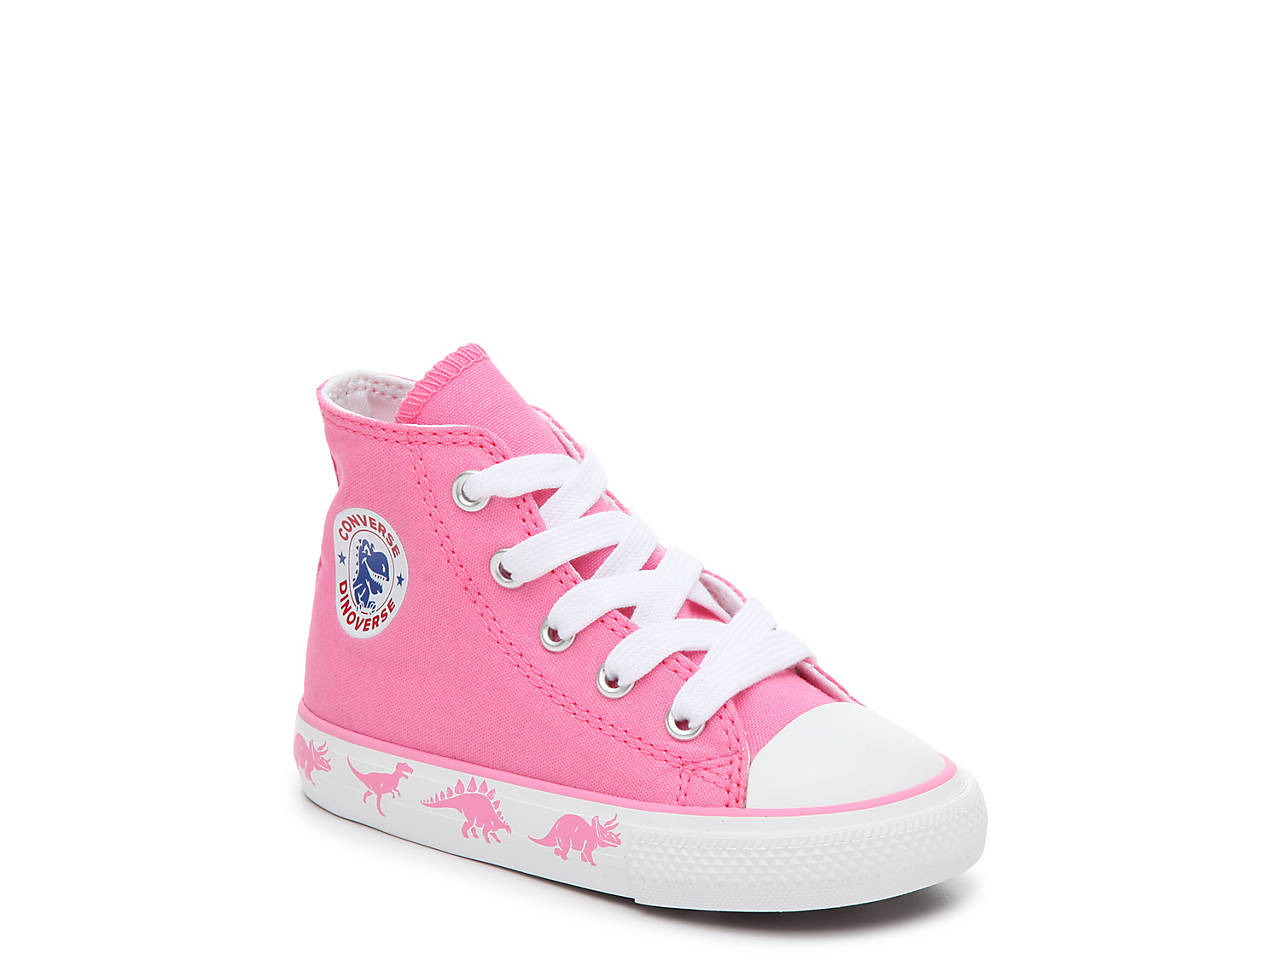 54e5fa50696e Converse. Chuck Taylor All Star Dinosaur Infant   Toddler High-Top Sneaker